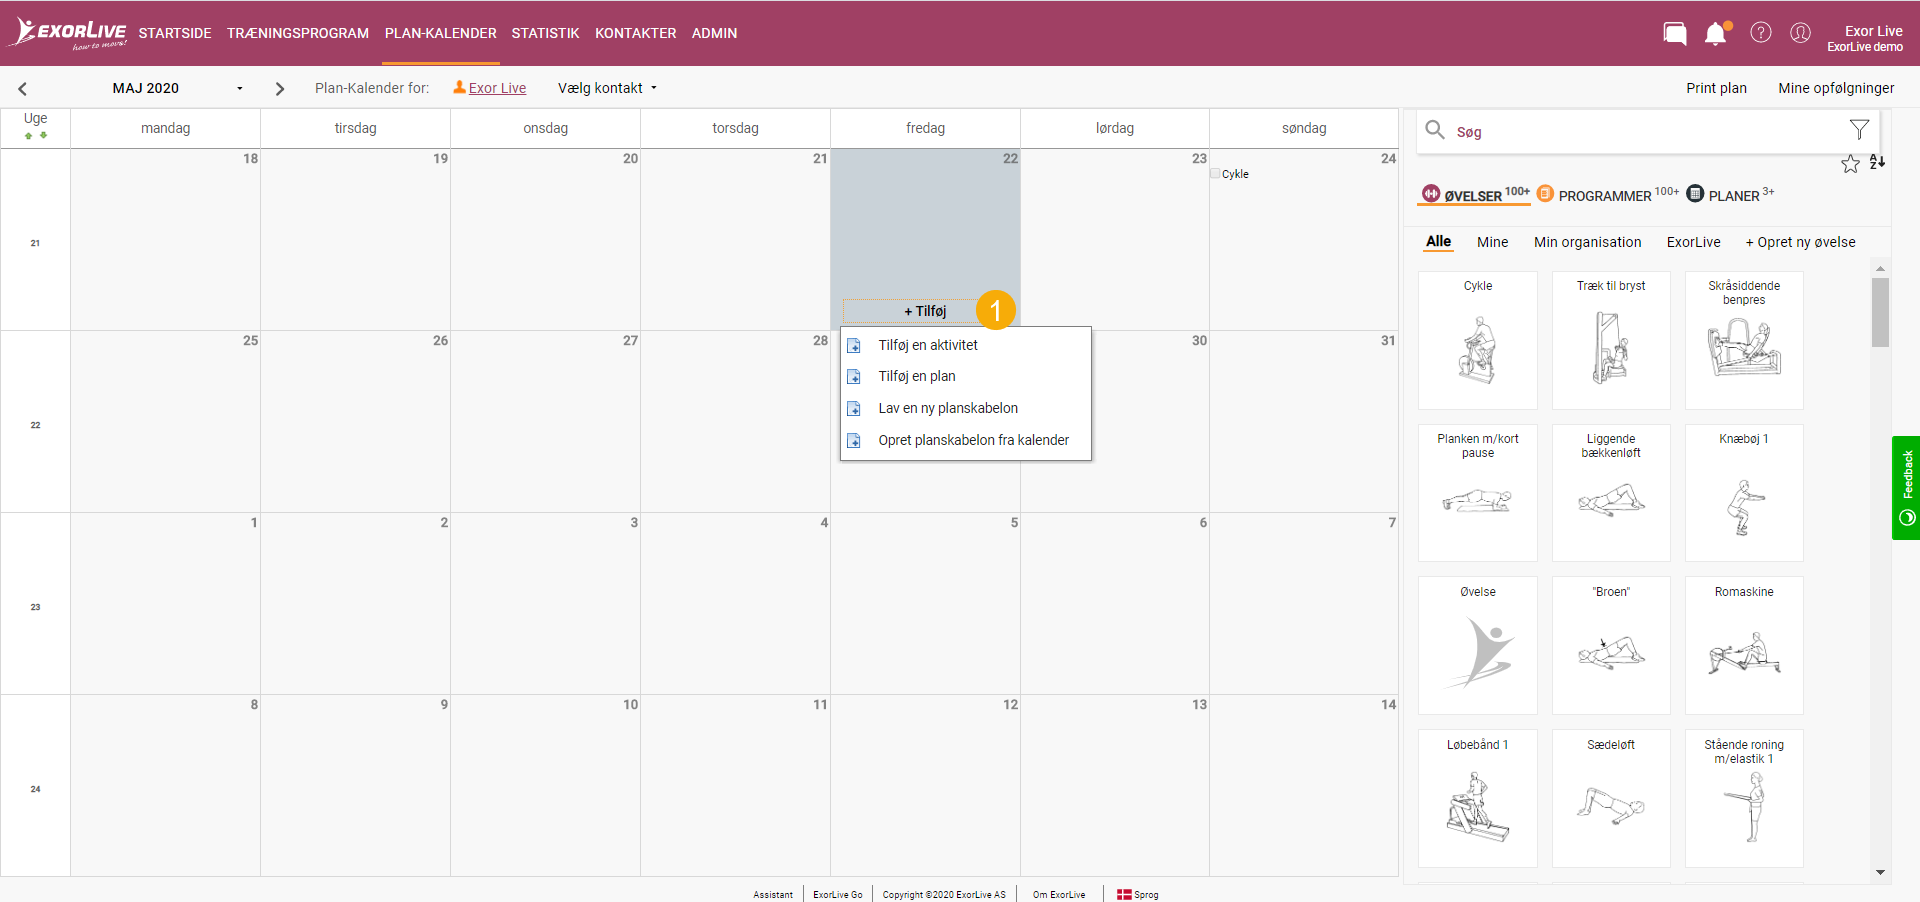 Finding_and_adding_exercises__programs_and_plans_to_the_calendar_Dansk_4.png